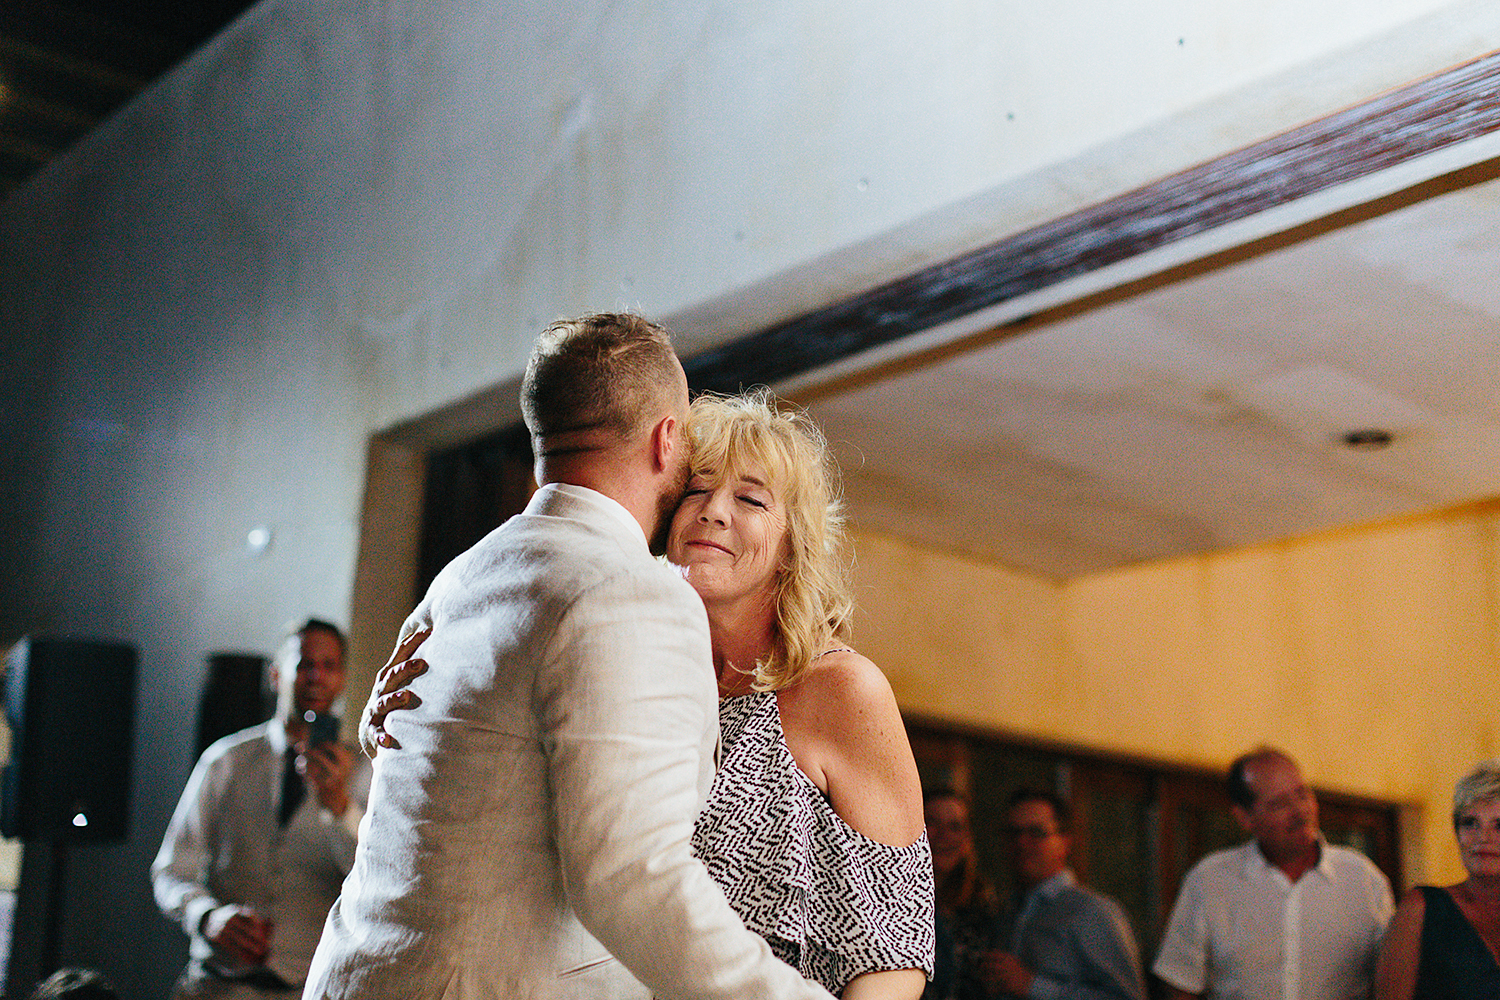 cabo-san-lucas-junebug-weddings-green-wedding-shoes-toronto-wedding-photographer-3b-photography-ventanas-private-club-mexico-reception-night-mother-and-son-first-dance-real-moments.jpg